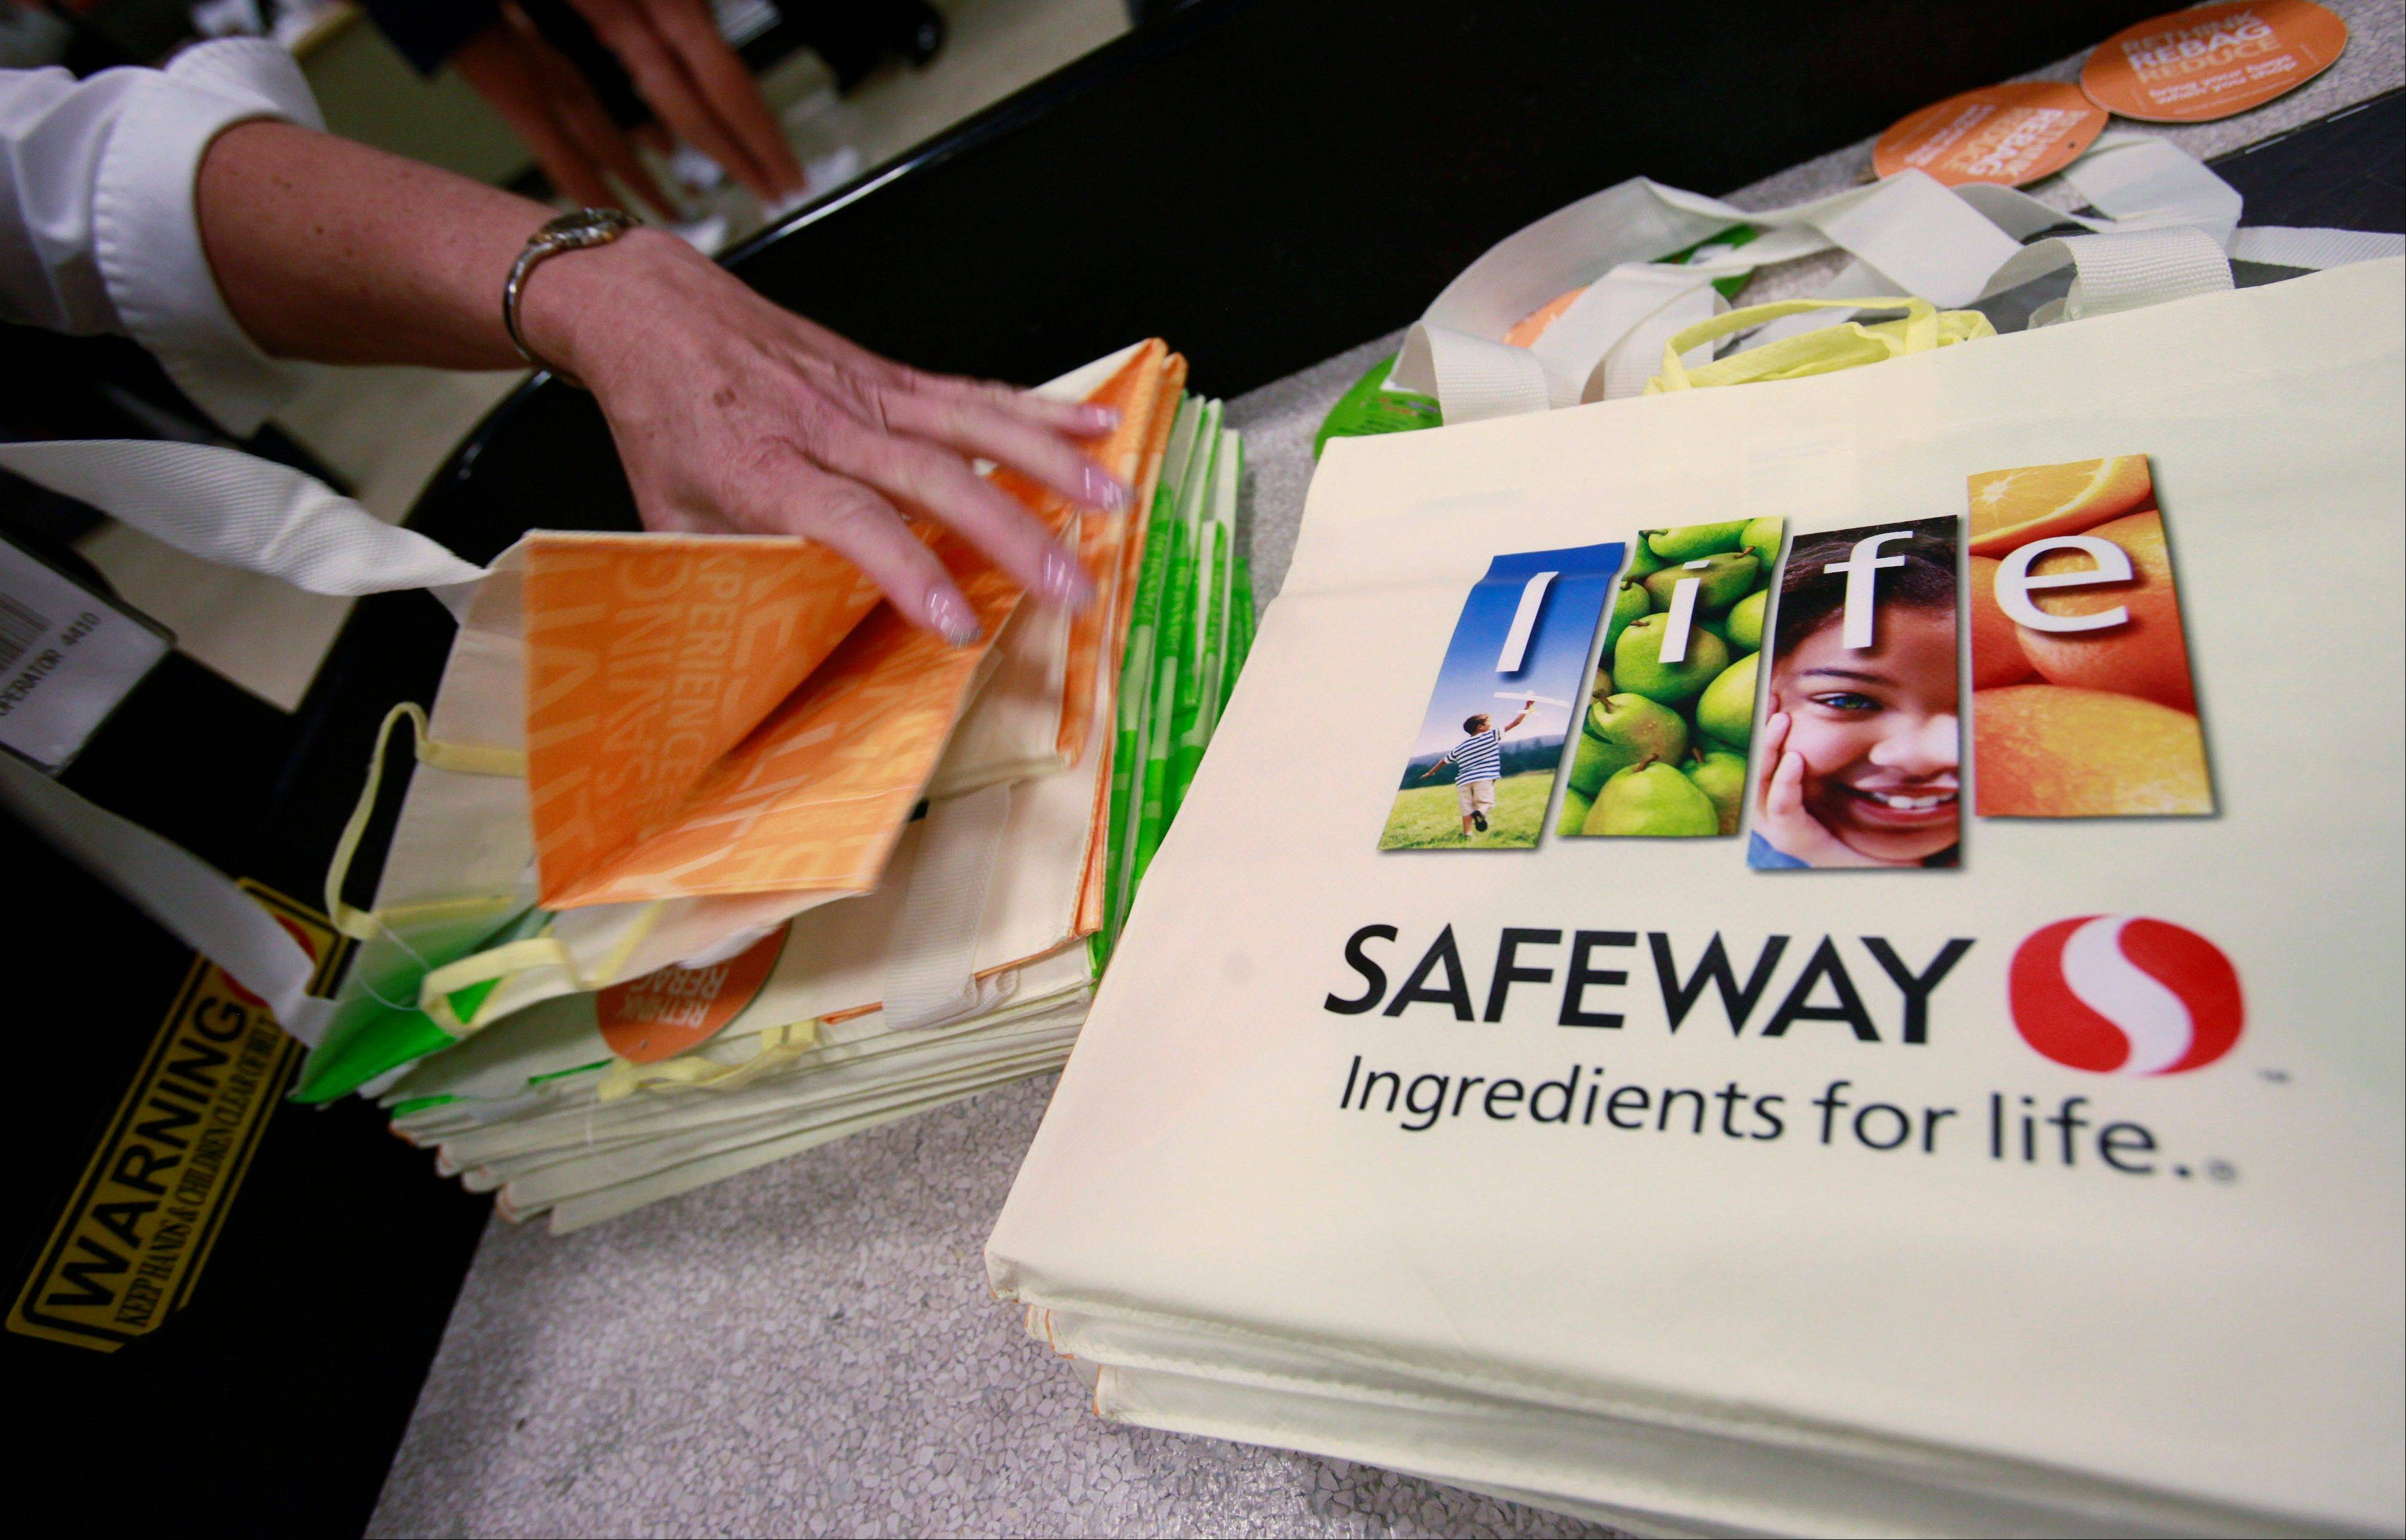 Safeway's second-quarter net income rose as higher selling prices and strong gas sales helped offset rising commodity costs. Safeway owns the Dominicks grocery store chain.